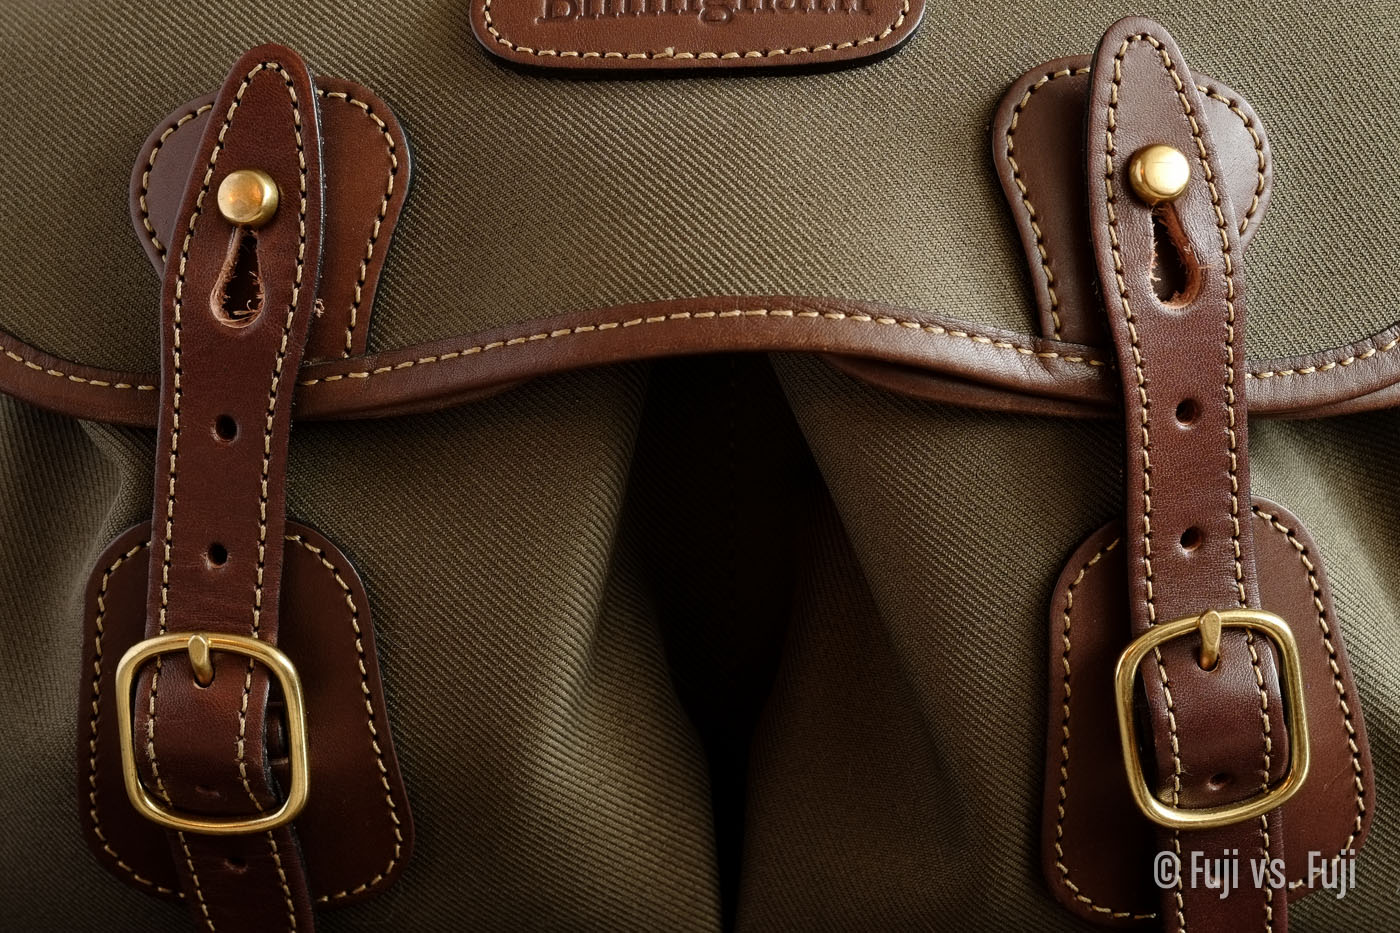 Dual clasps with adjustable buckles